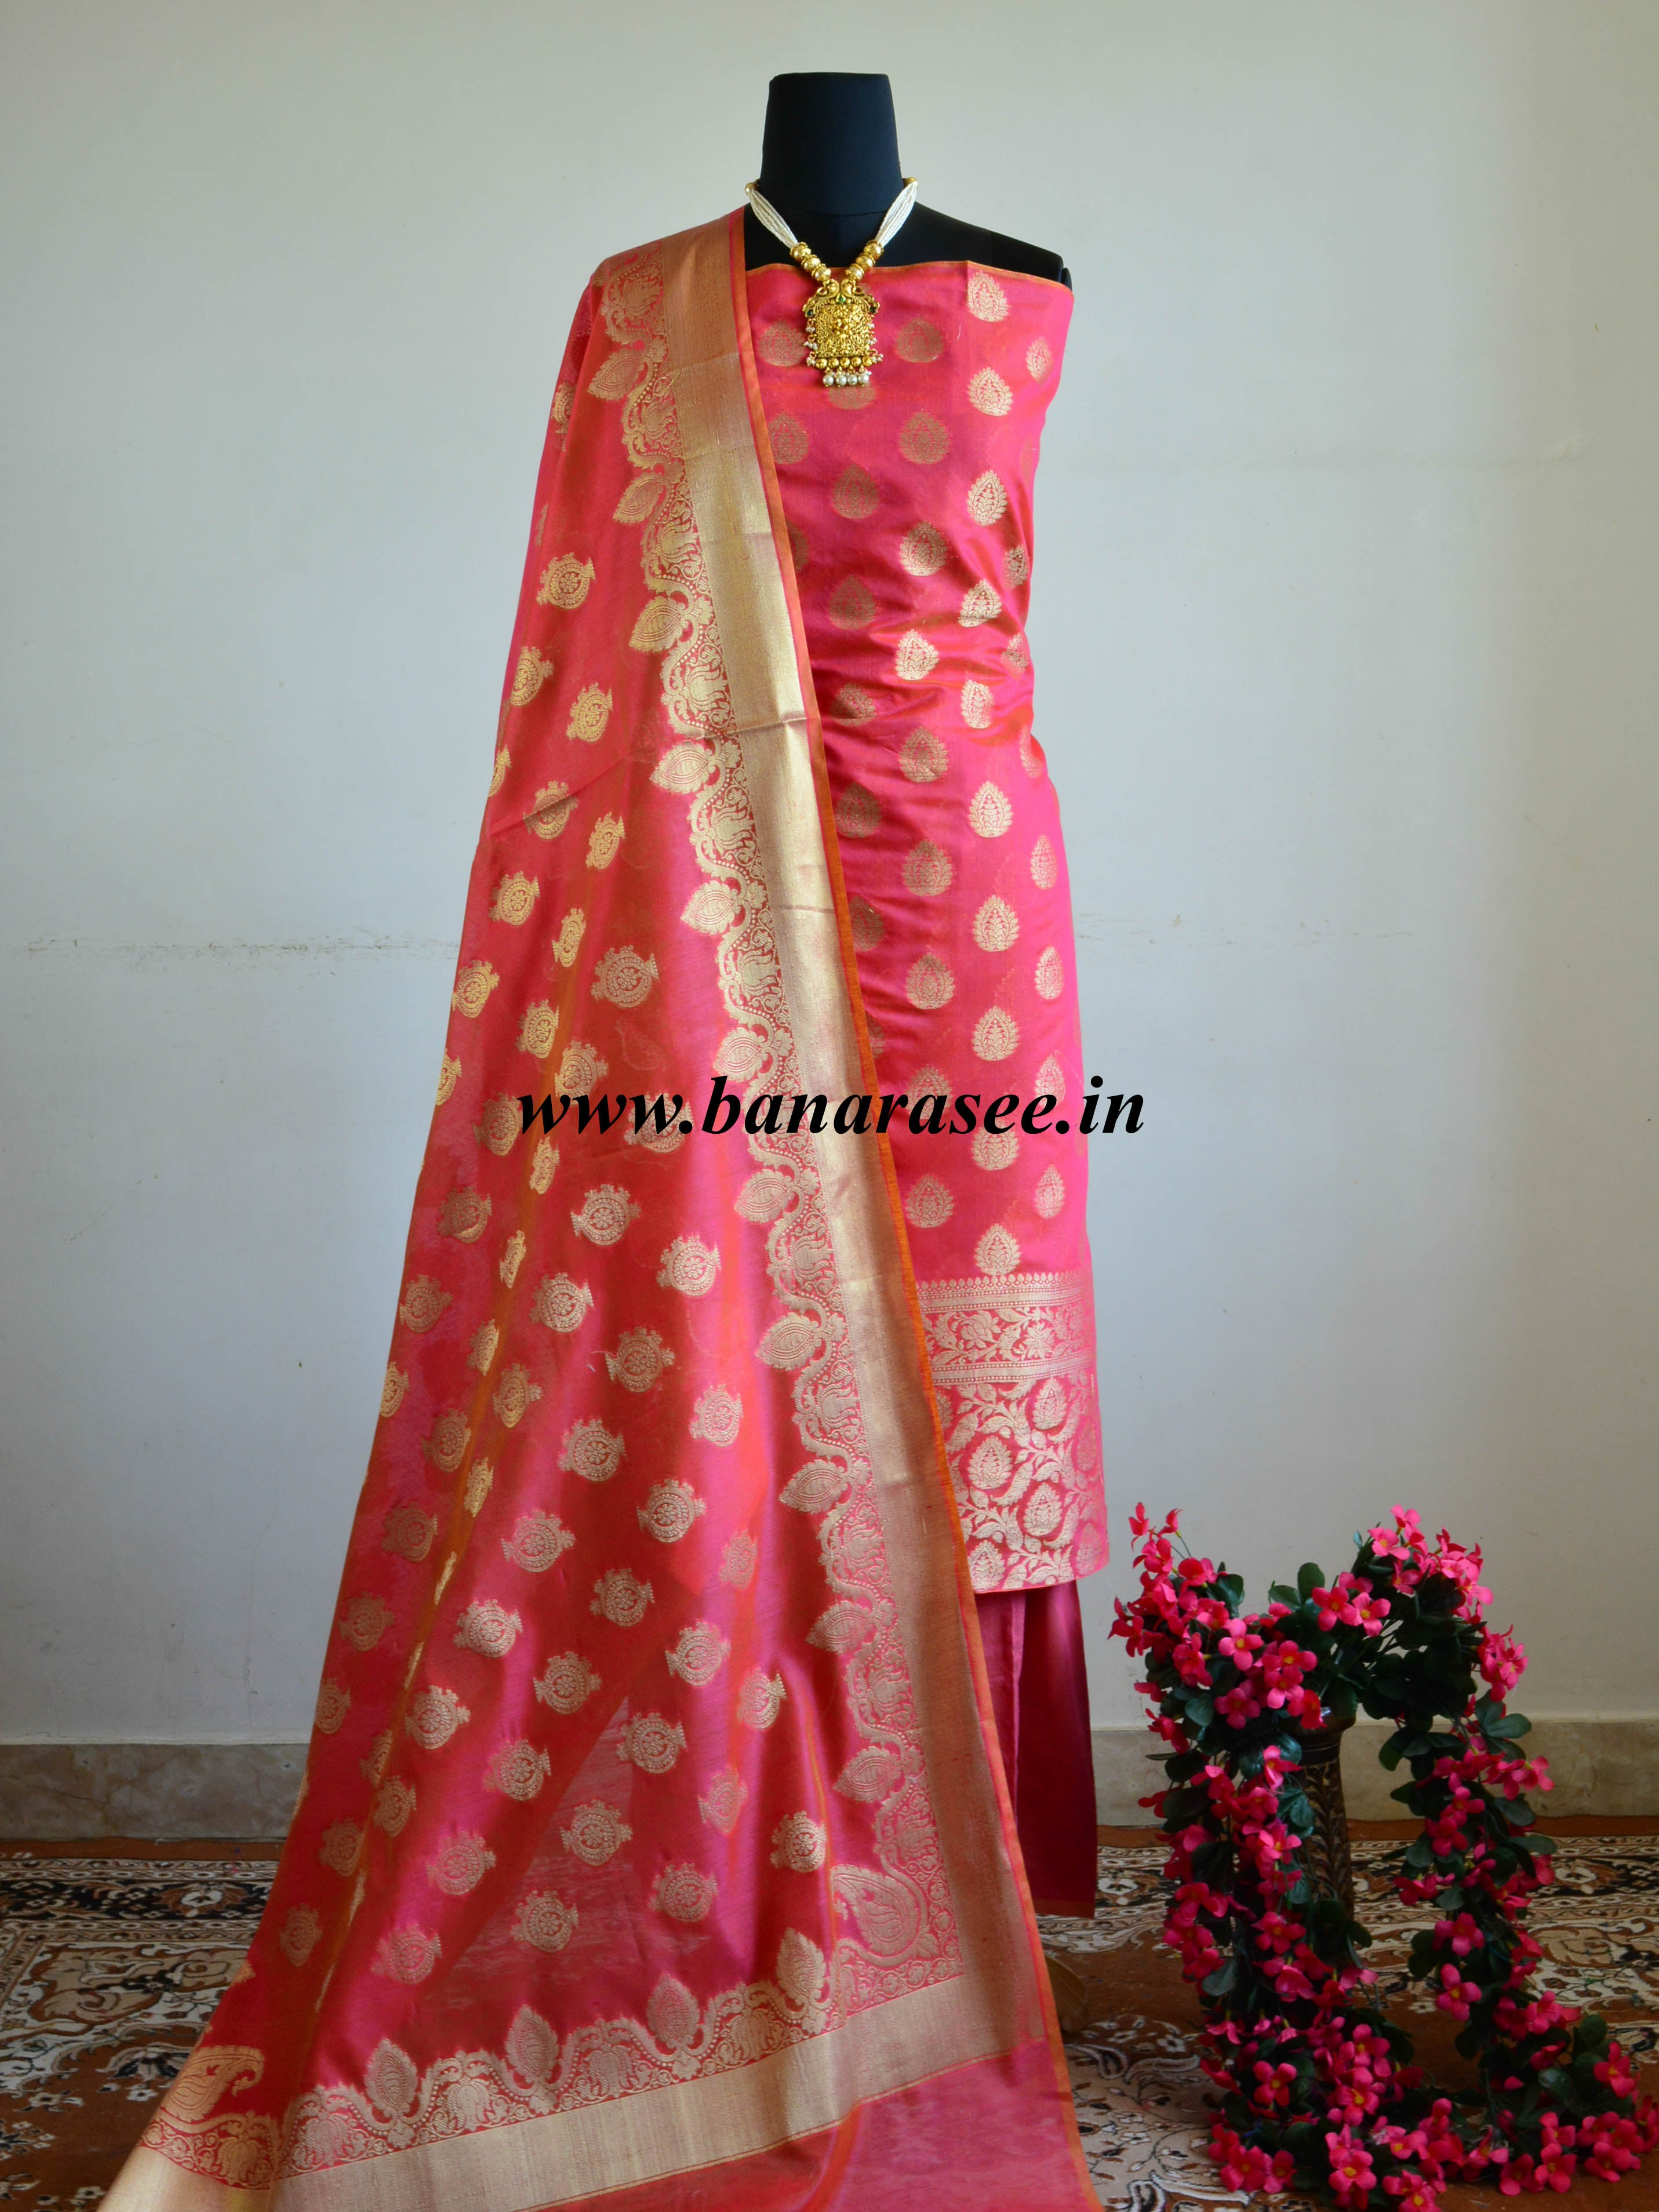 Banarasee Chanderi Cotton Salwar Kameez Fabric With Zari Buti & Border Design-Pink